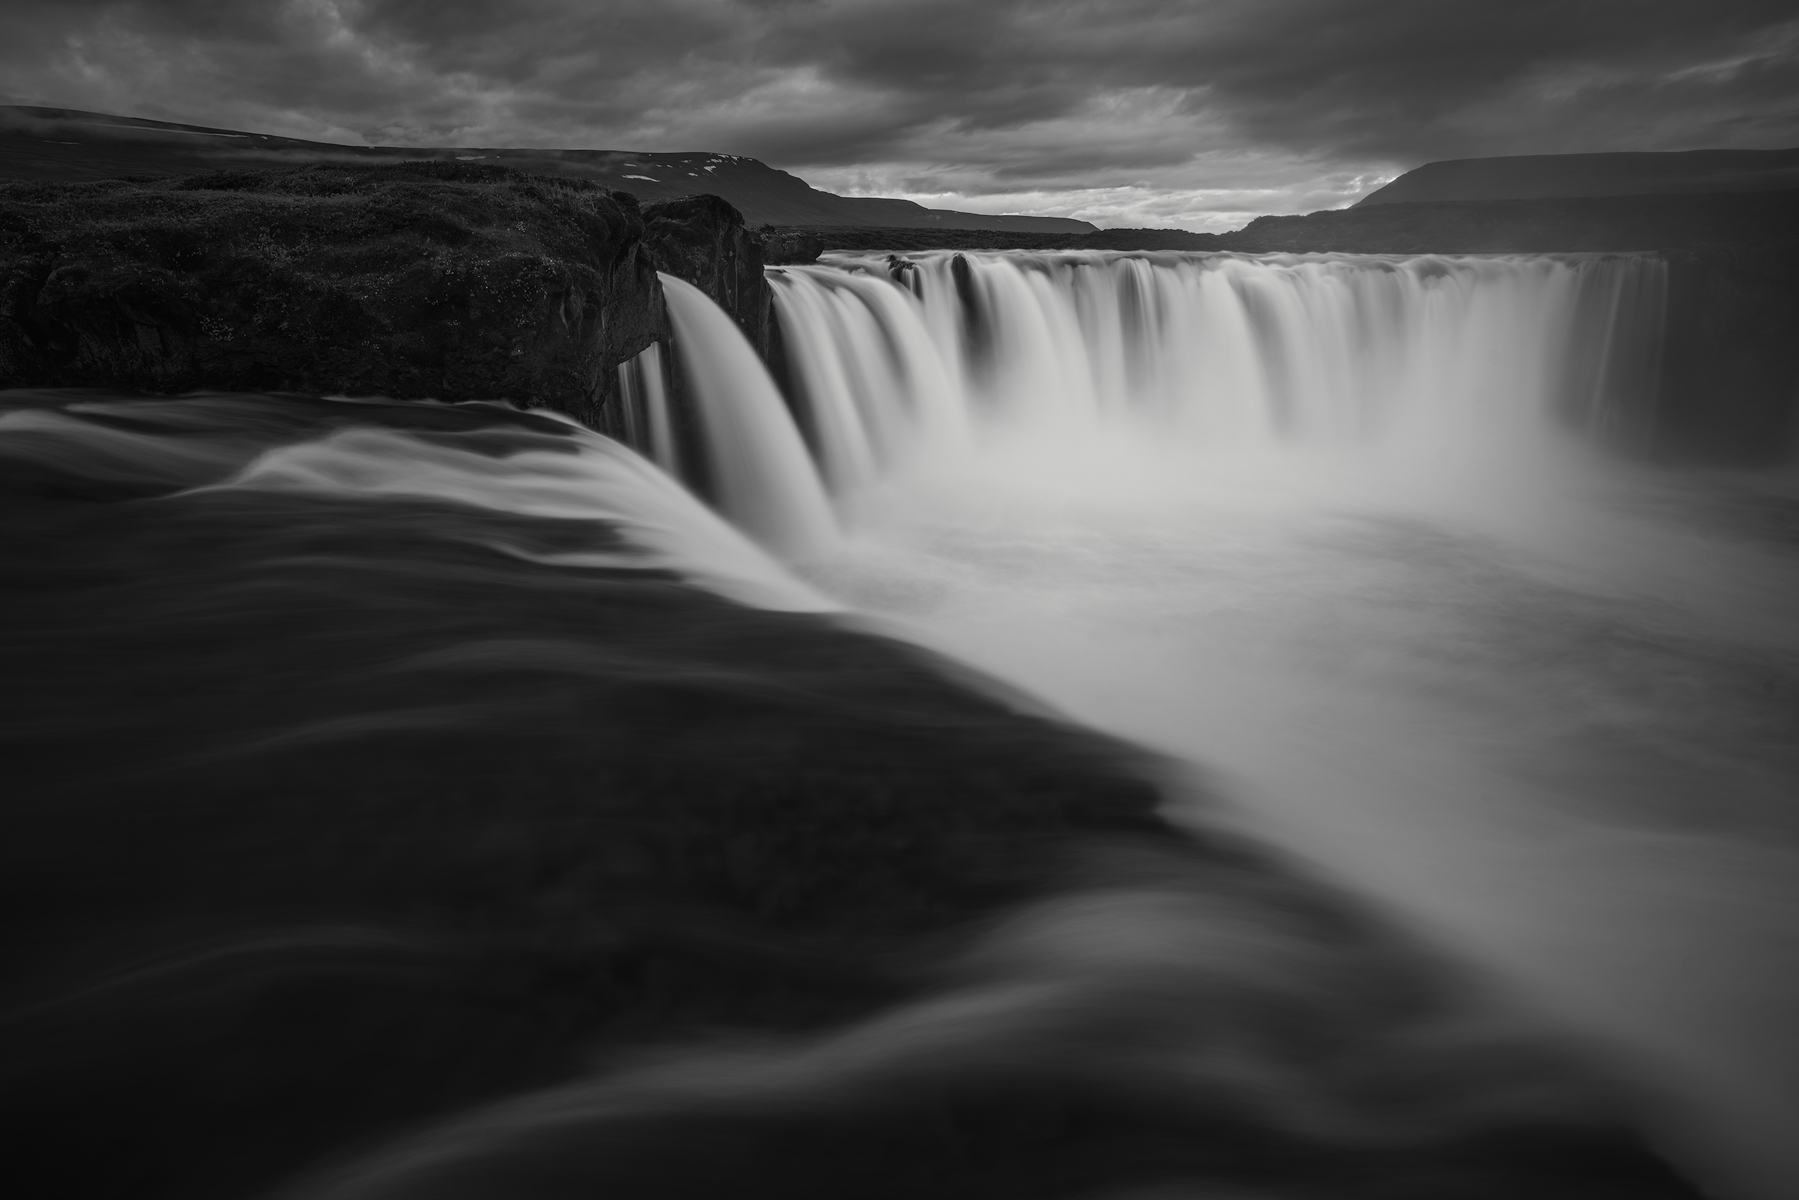 Twilight at Goðafoss Waterfall looking along the left side towards the main falls. Image Notes: Sony a7RII and a Tokina FiRIN 20mm f2.0 FE MF. Image exposed at ISO 100 at f11 for 10 seconds.